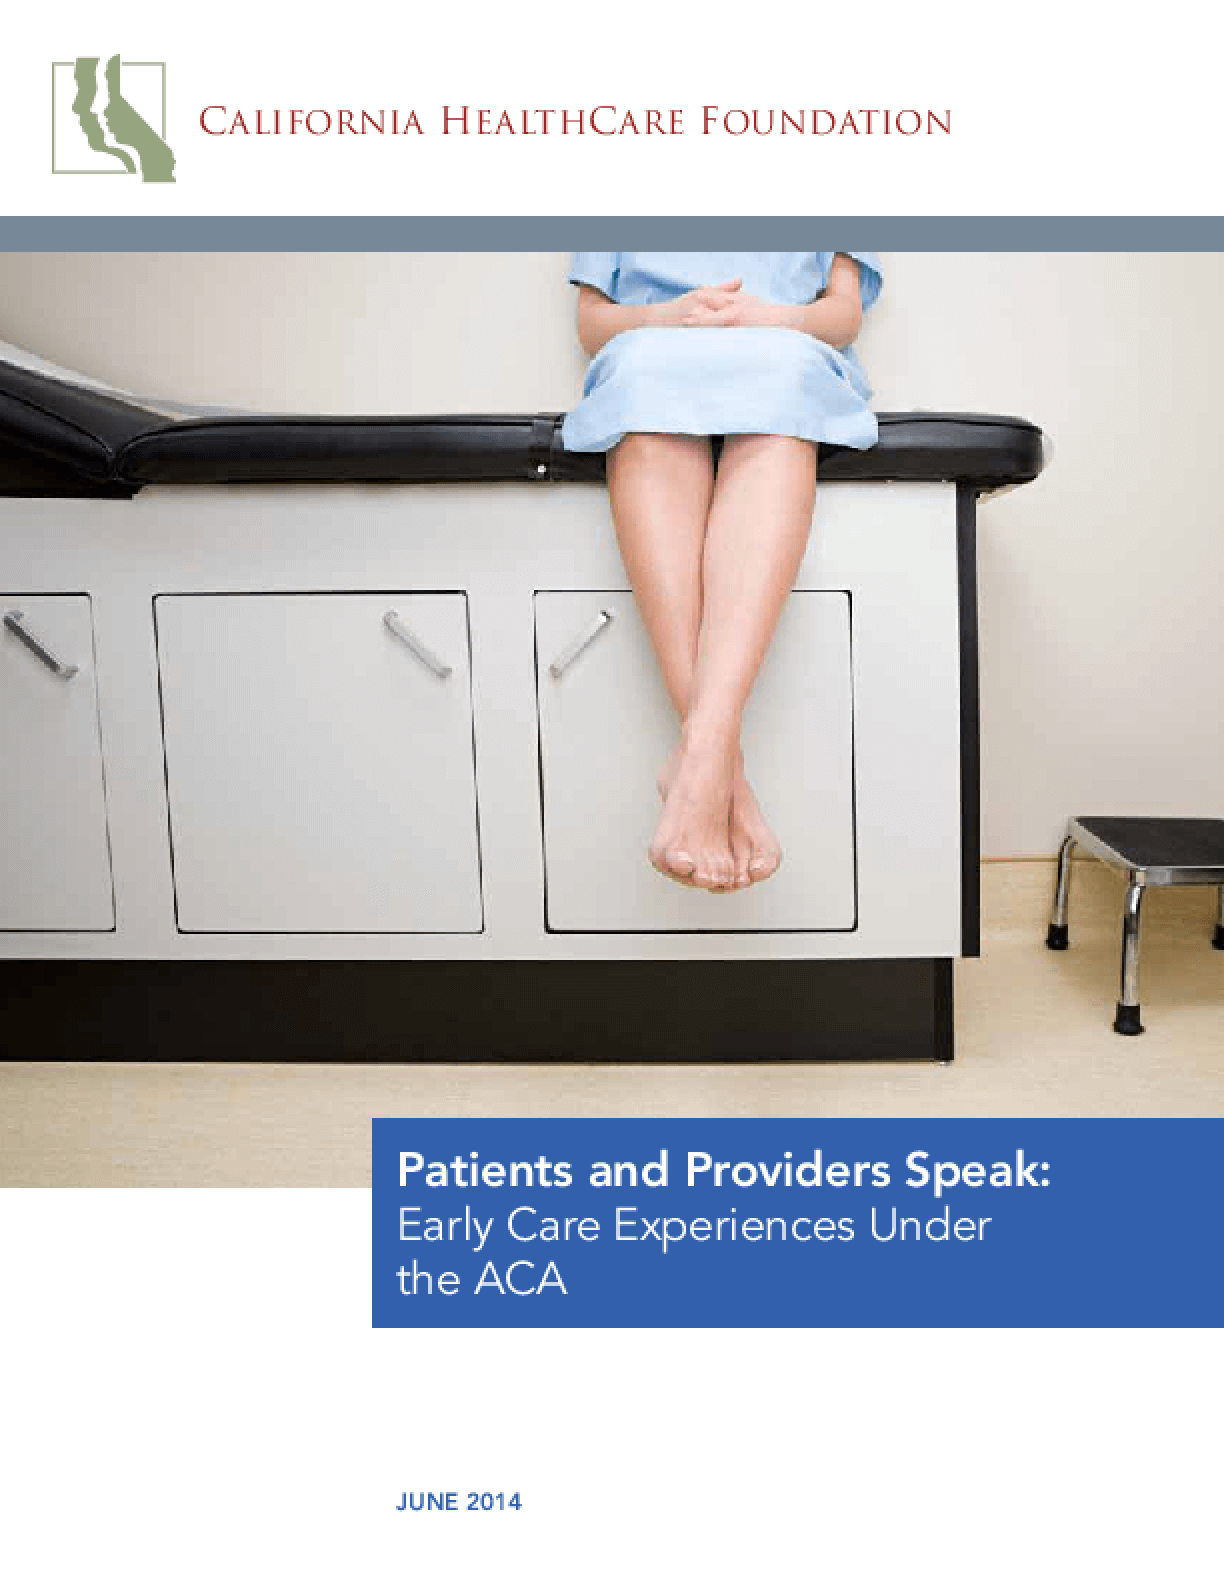 Patients and Providers Speak: Early Care Experiences Under the ACA